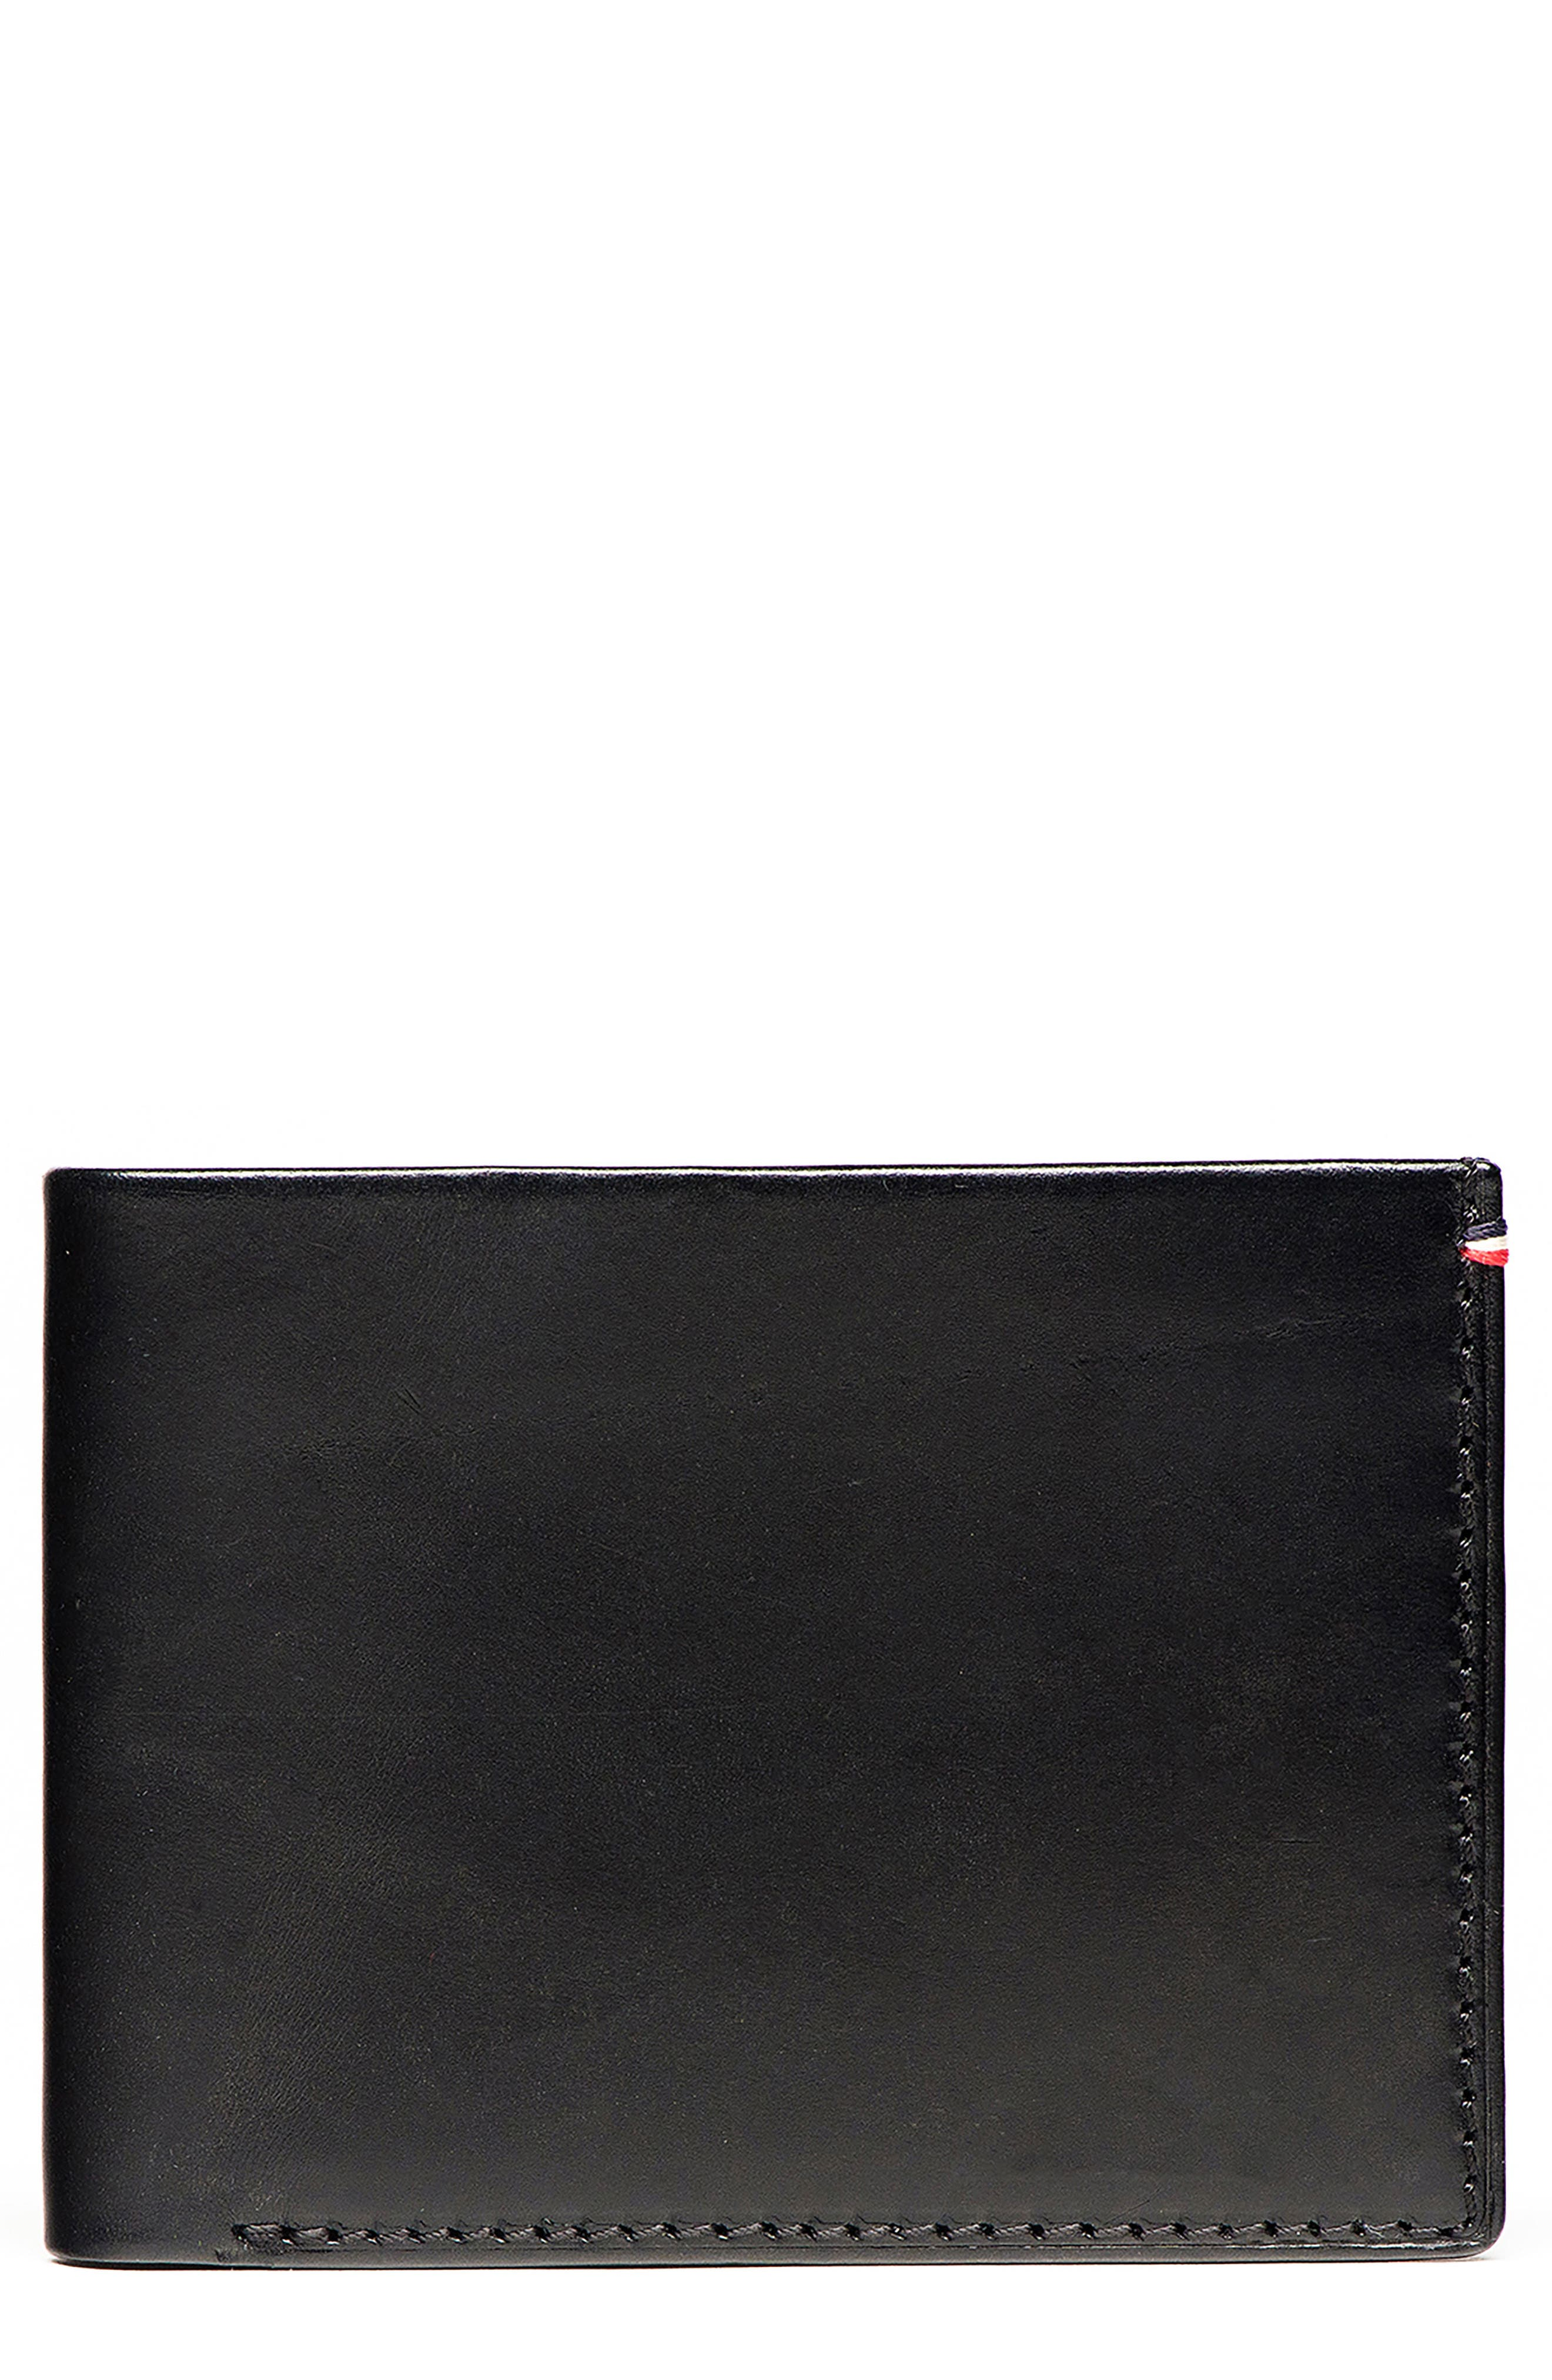 Alternate Image 1 Selected - Jack Mason Core Leather Wallet